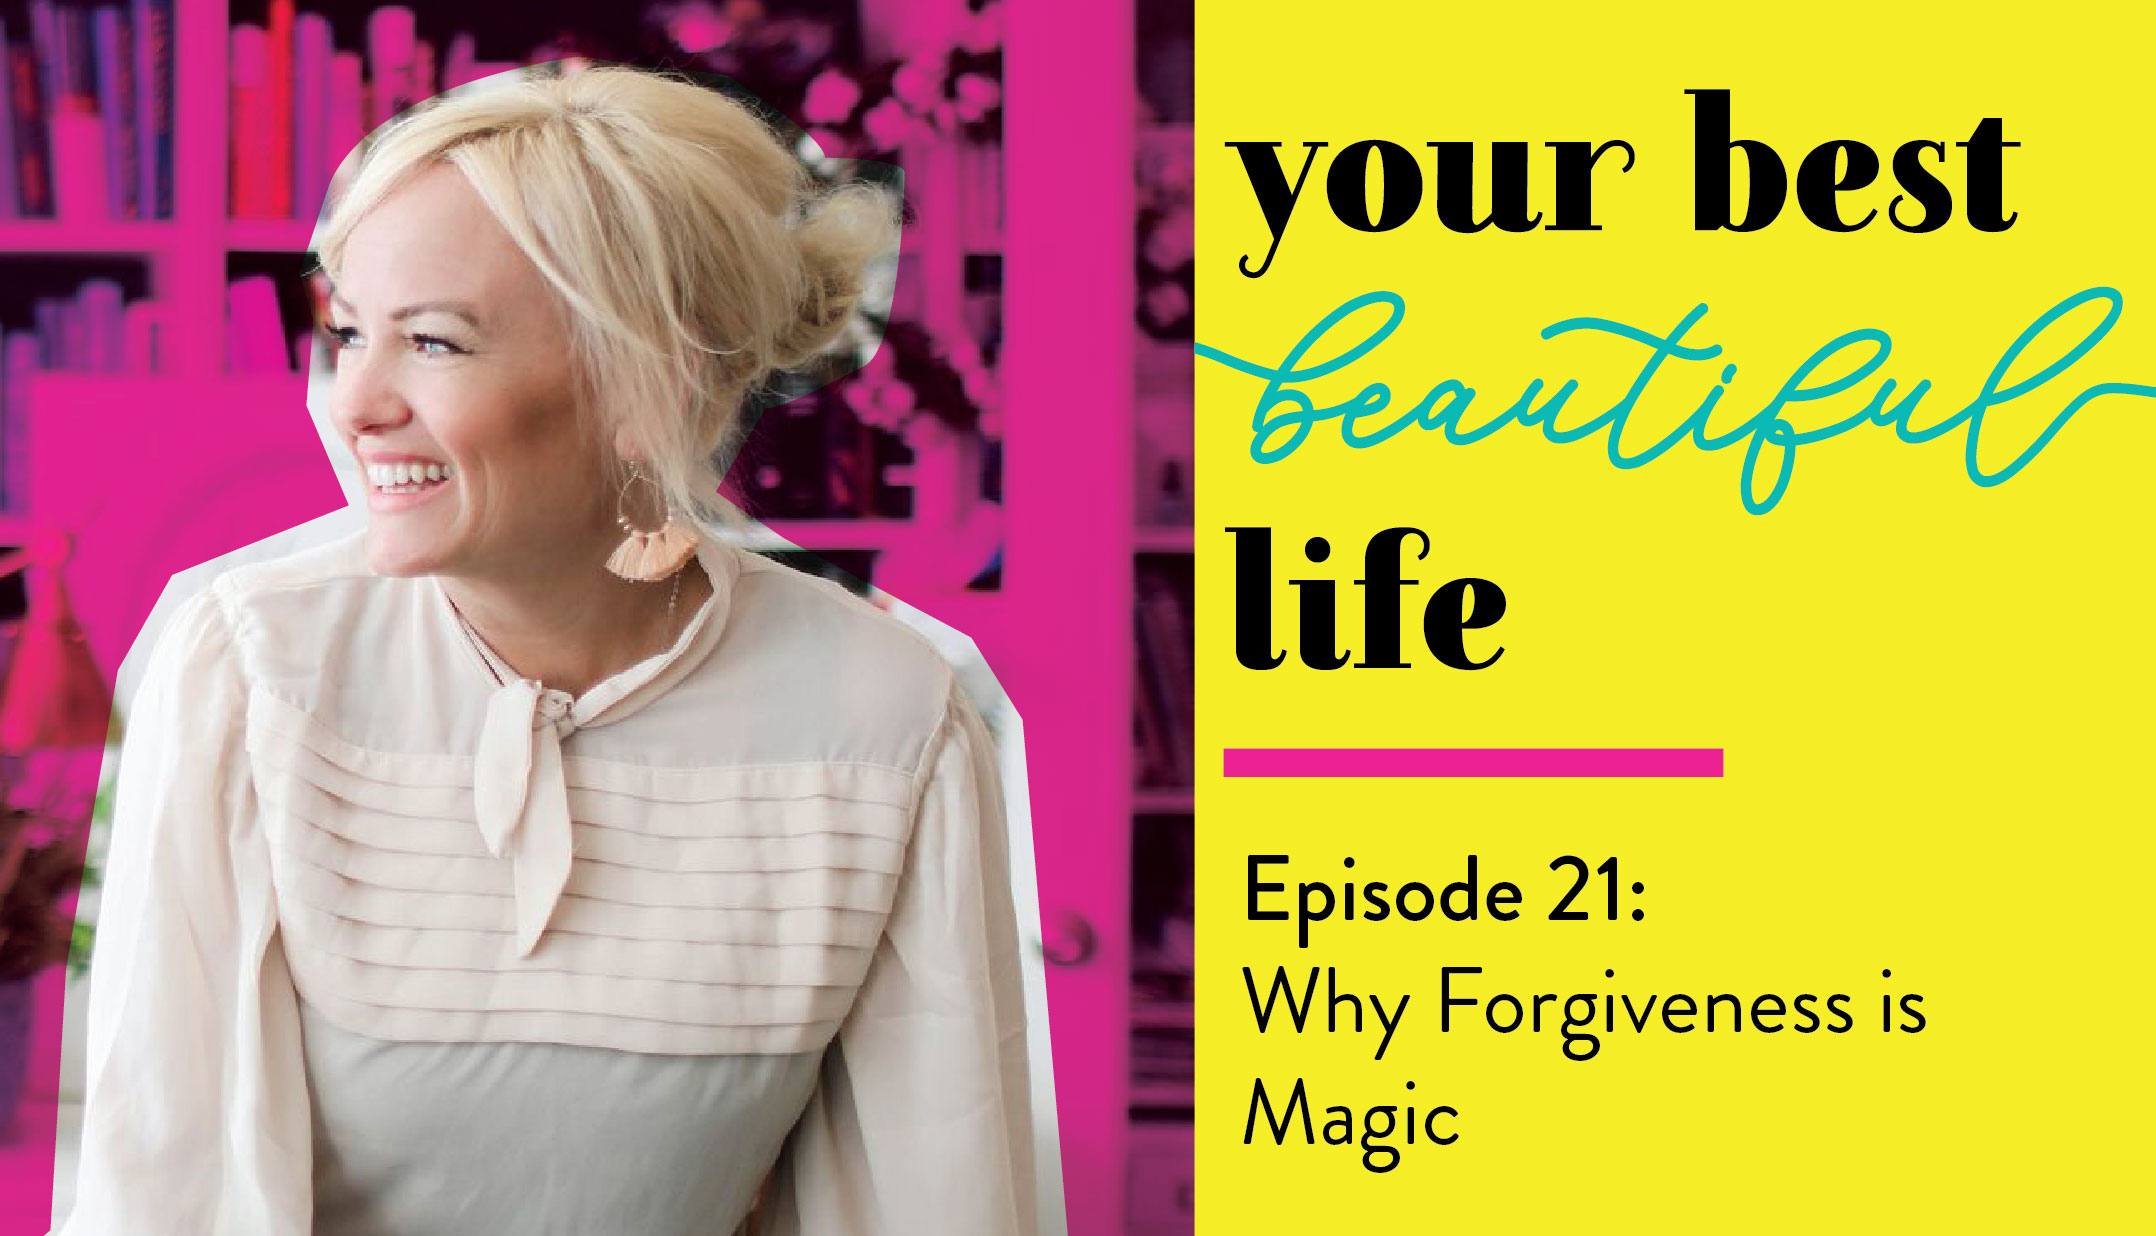 Why Forgiveness is Magic